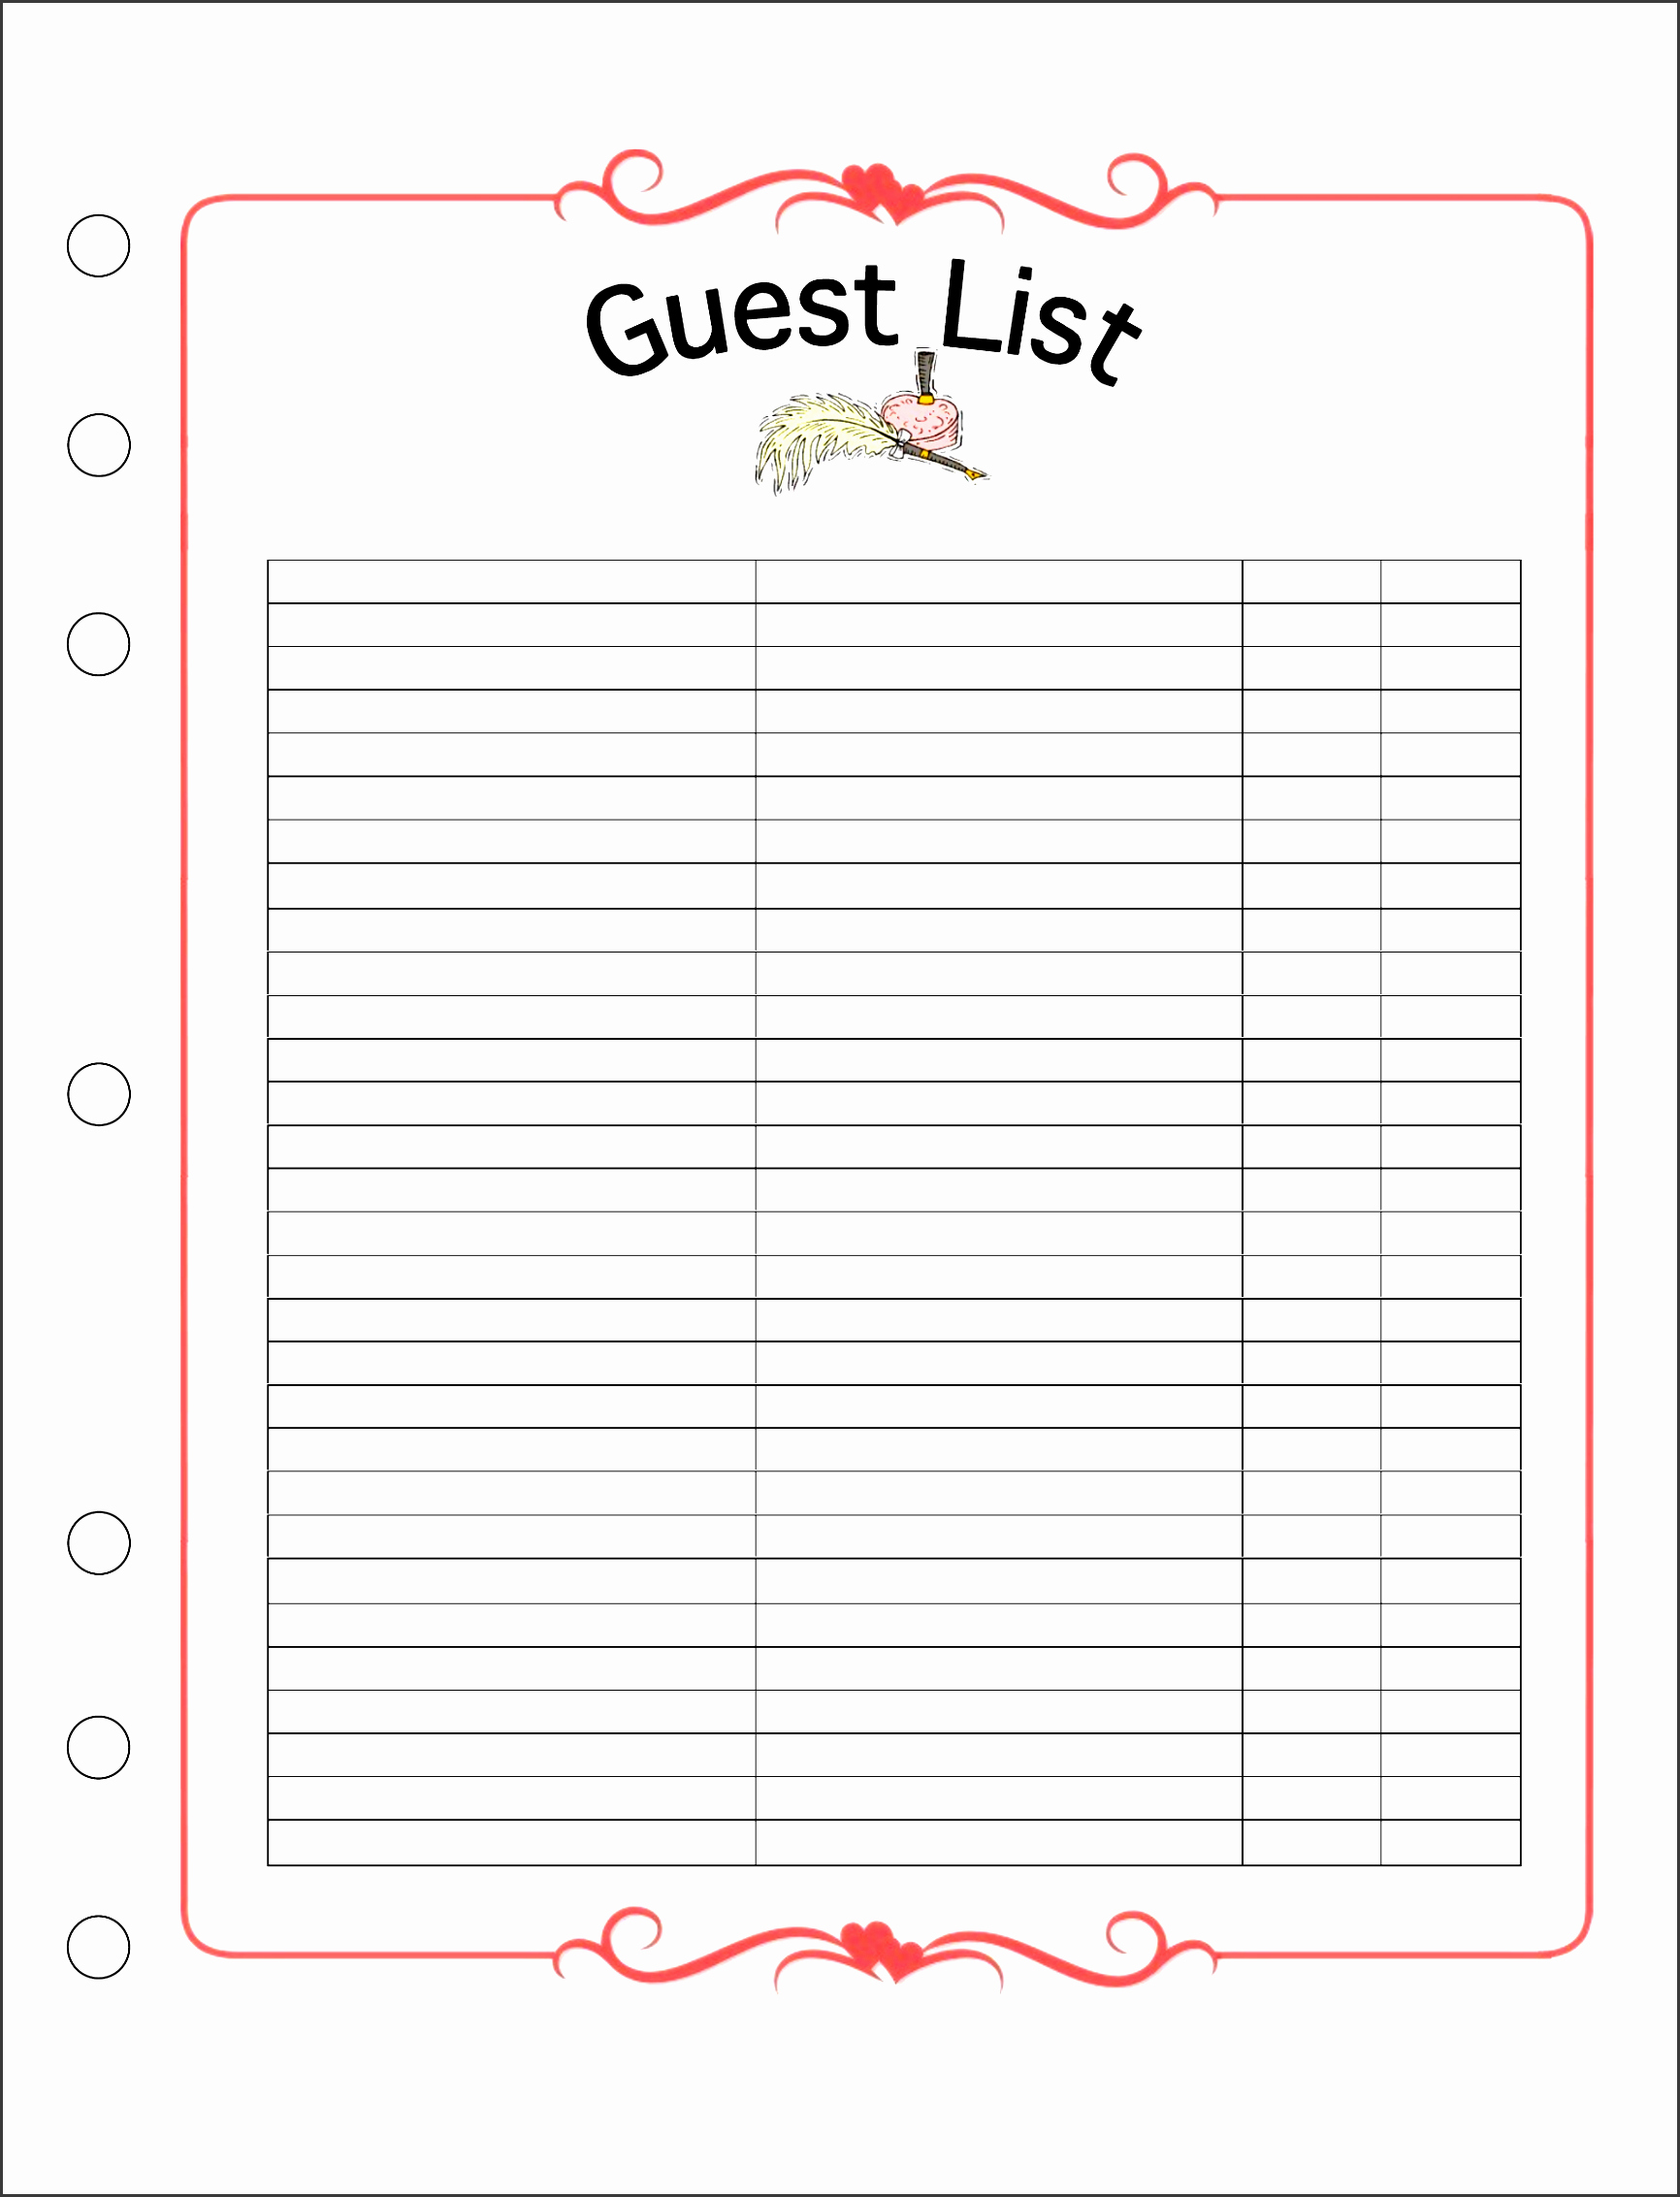 5 Easy to Use Wedding Guest List Template